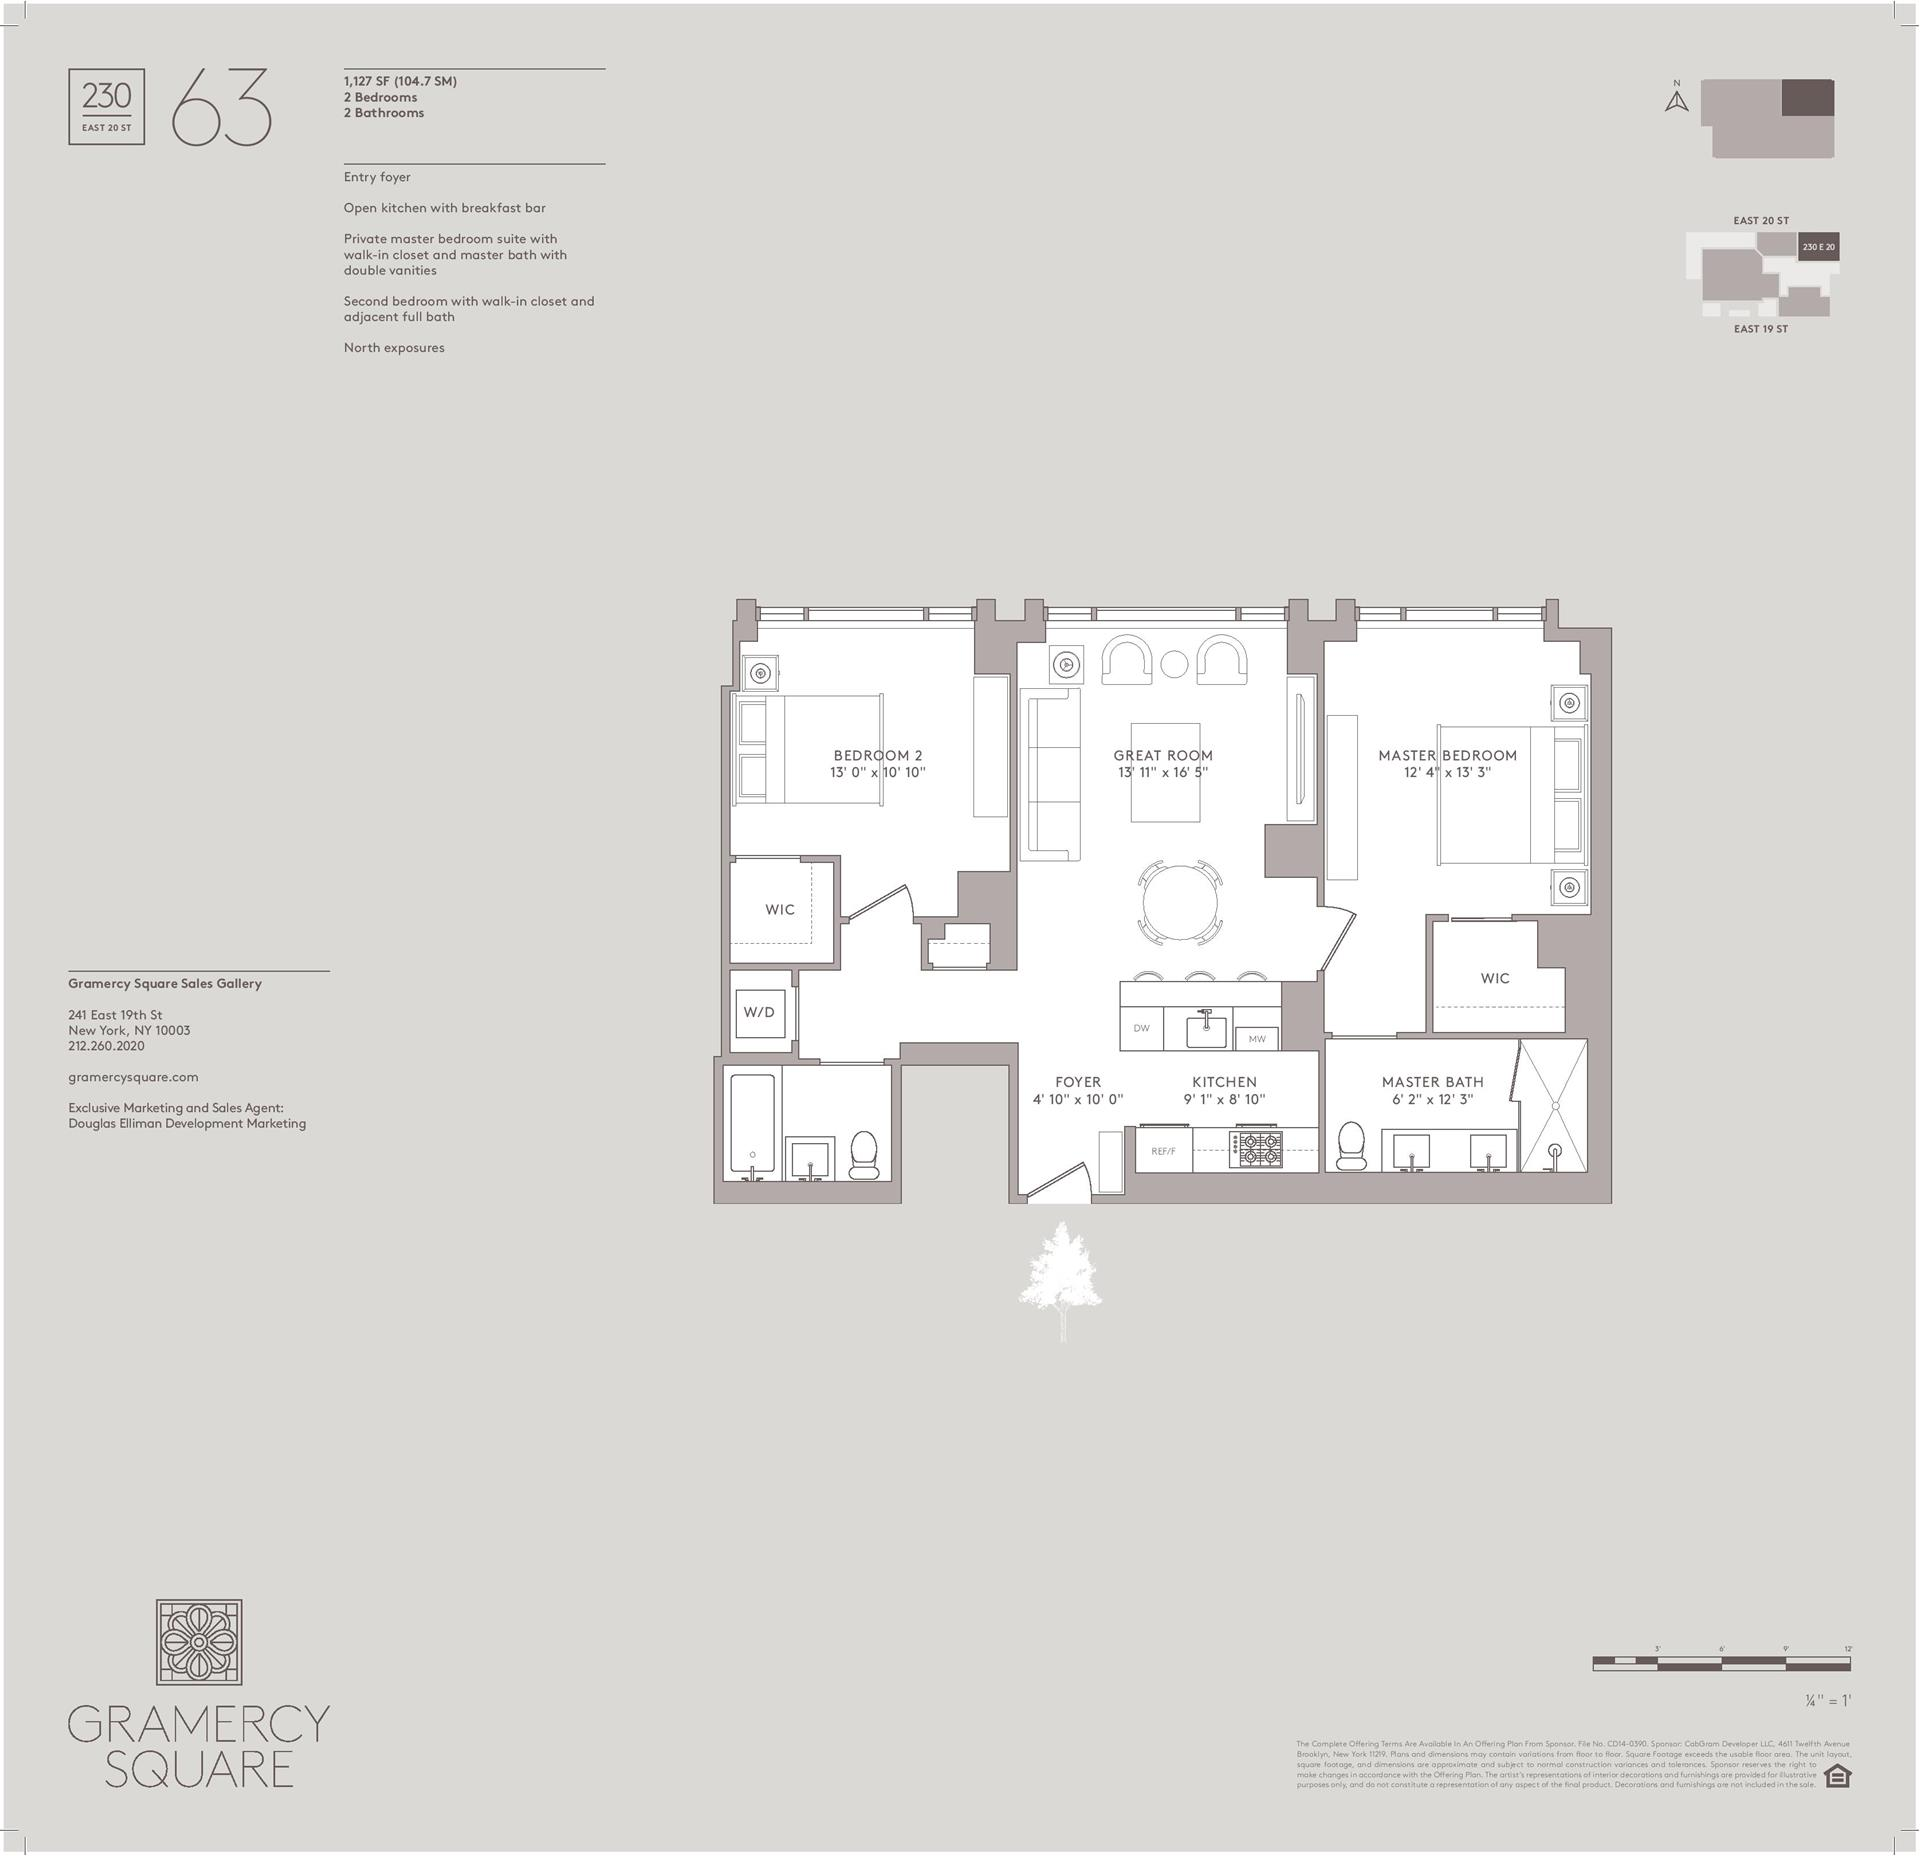 Floor plan of Gramercy Square, 230 East 20th St, 63 - Gramercy - Union Square, New York